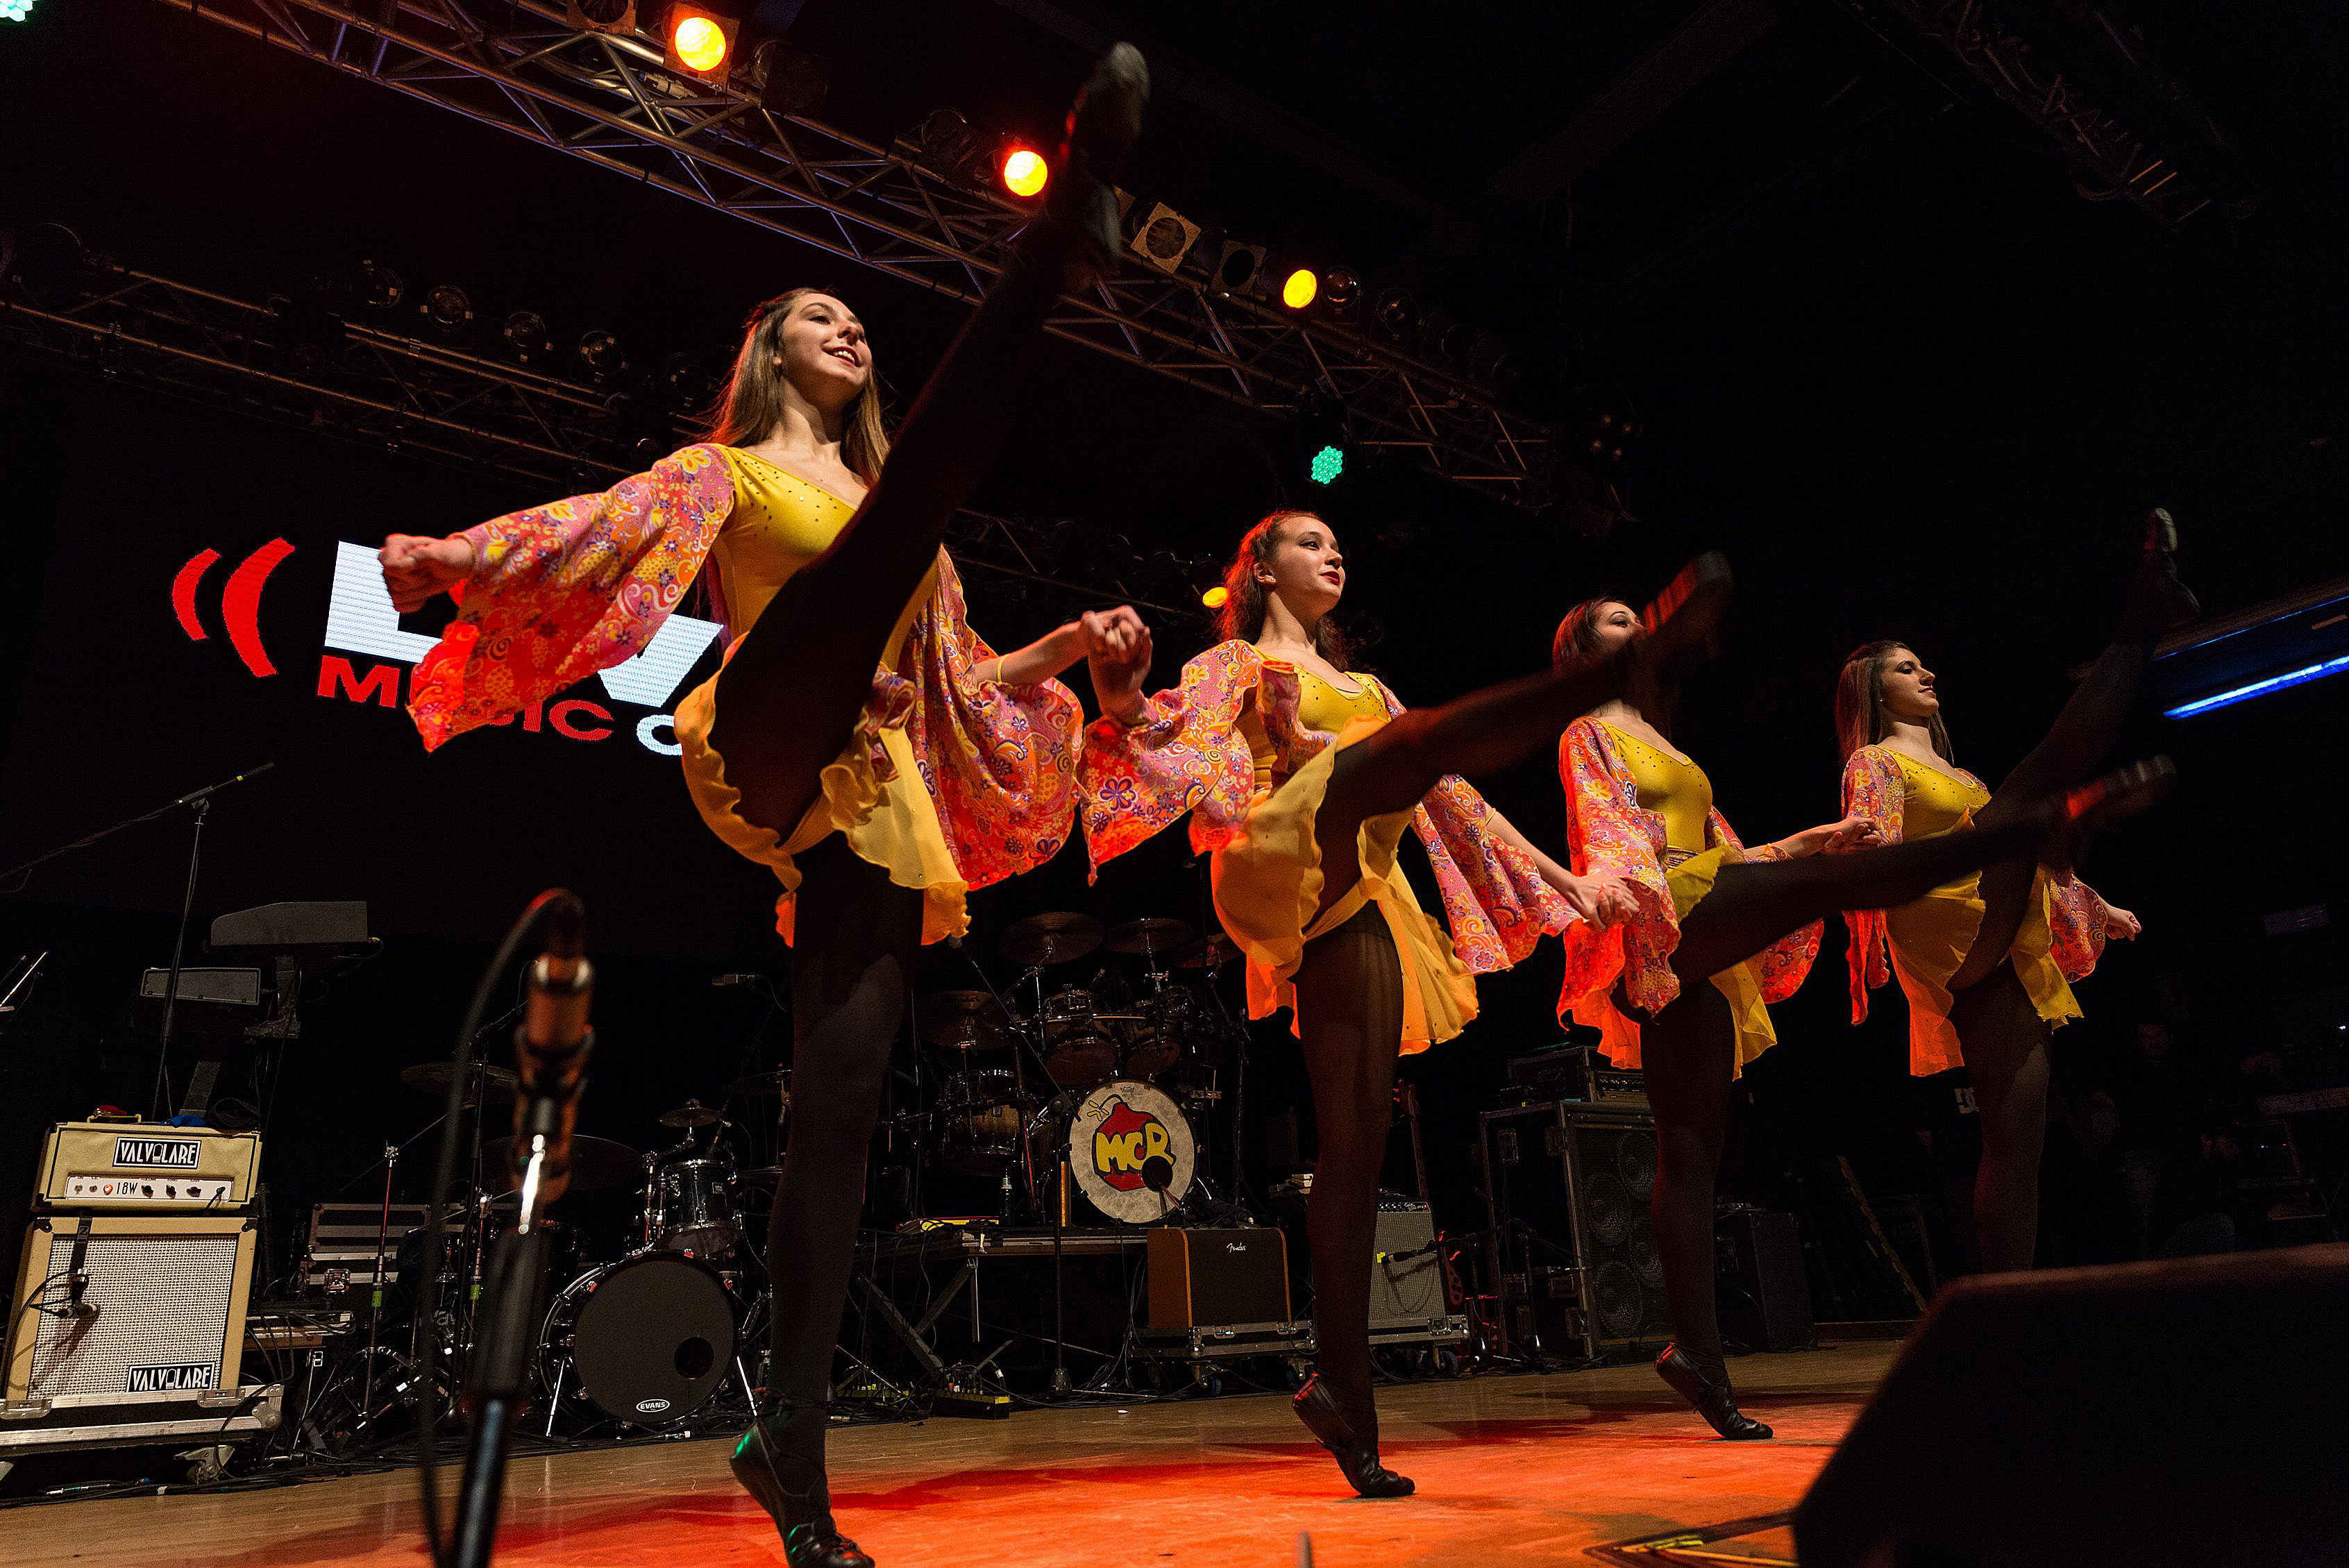 Milan, Italy. 16 March 2018. Irish dancers performs at Live Music Club for the Irish folk festival. Brambilla Simone Photography Live News